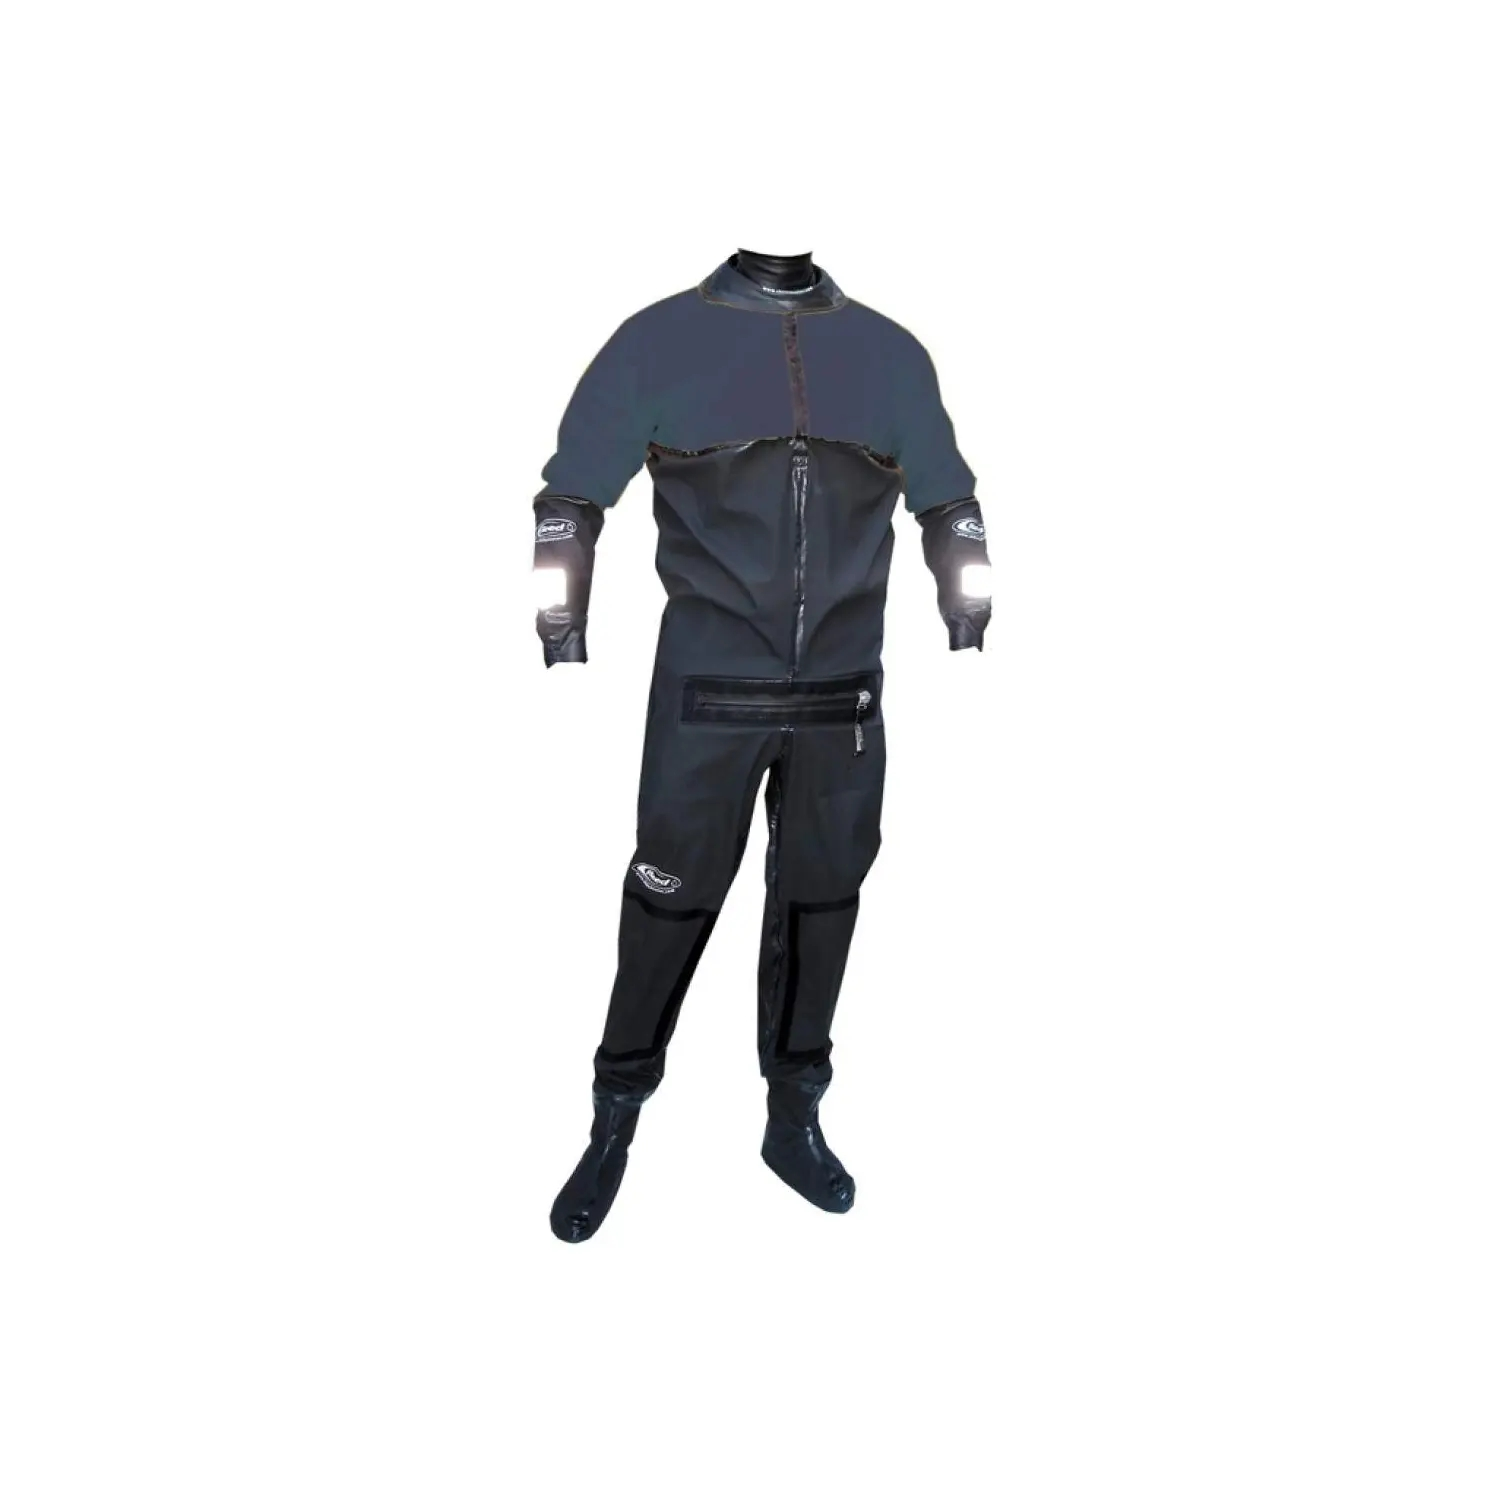 Kombinezon Aquatherm Fleece Full